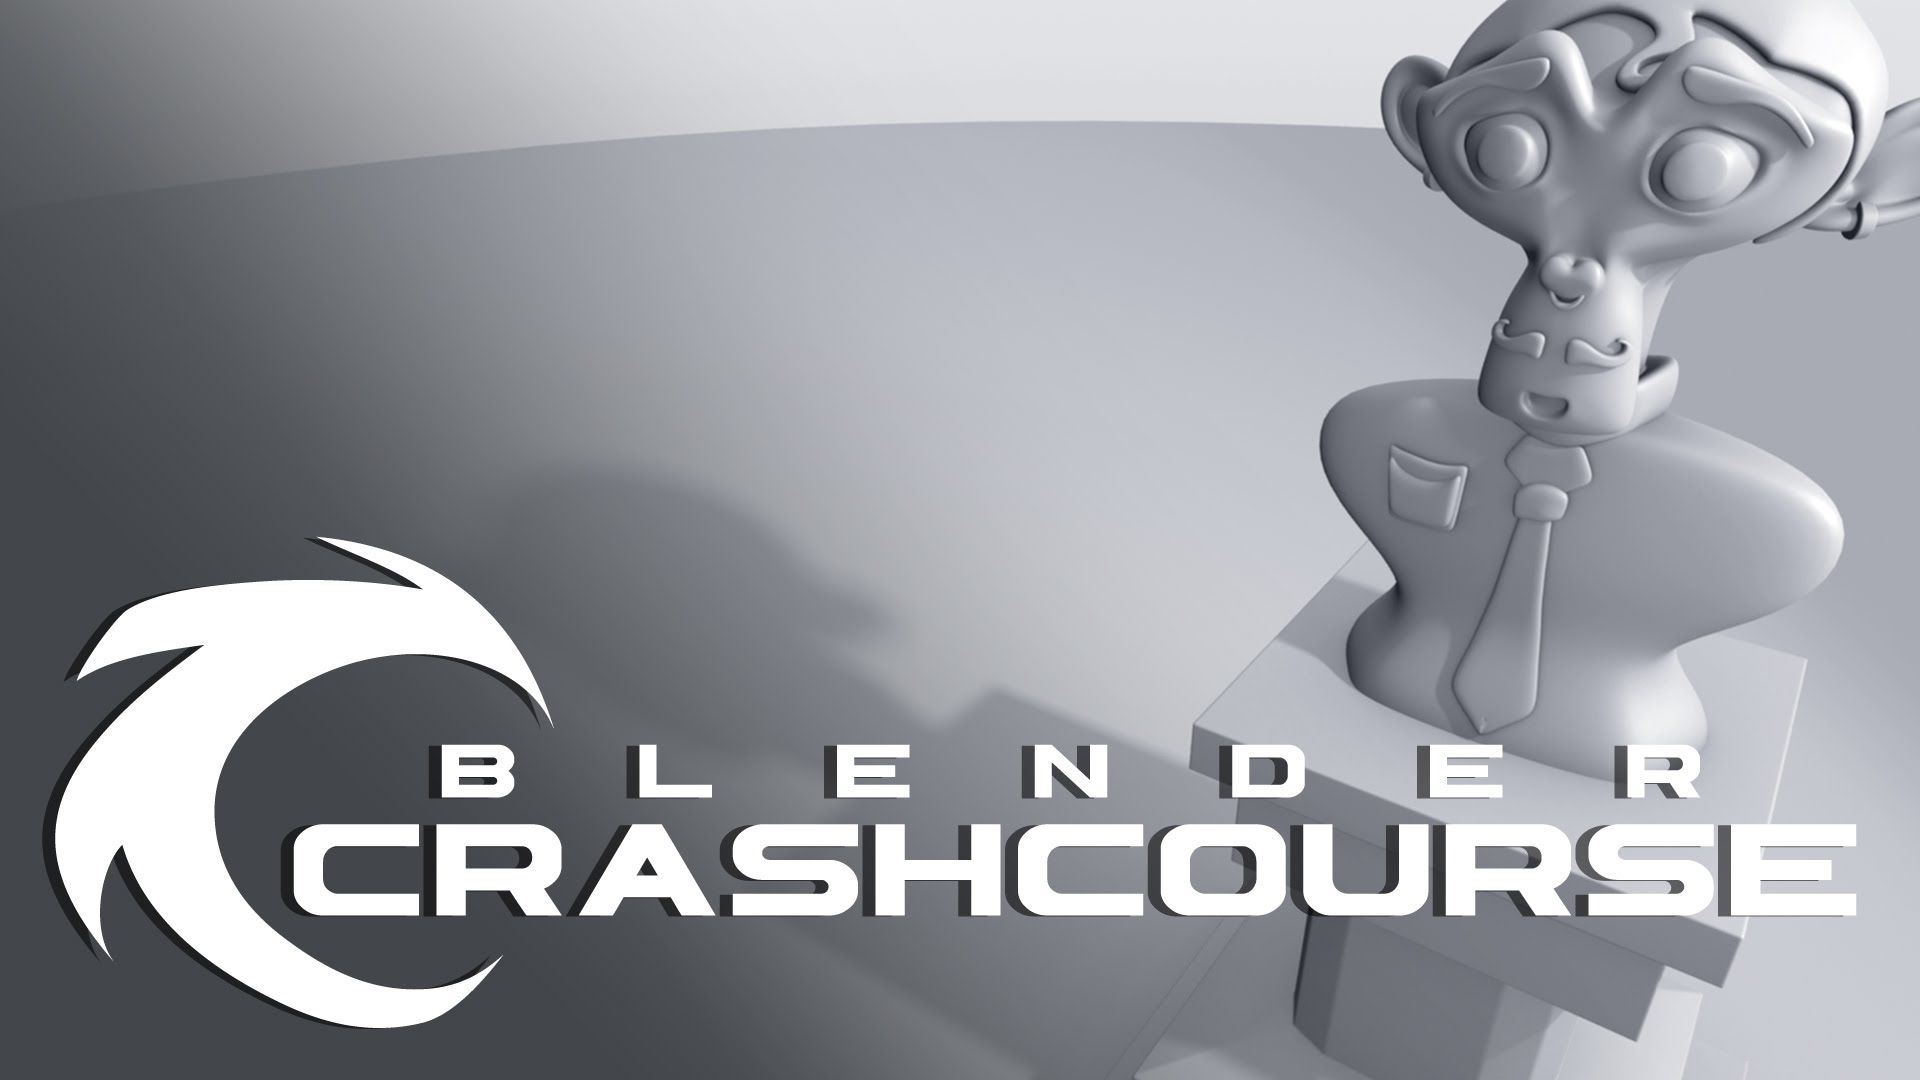 The Draw Mesh tool combines the awesome power of Blender BSurfaces